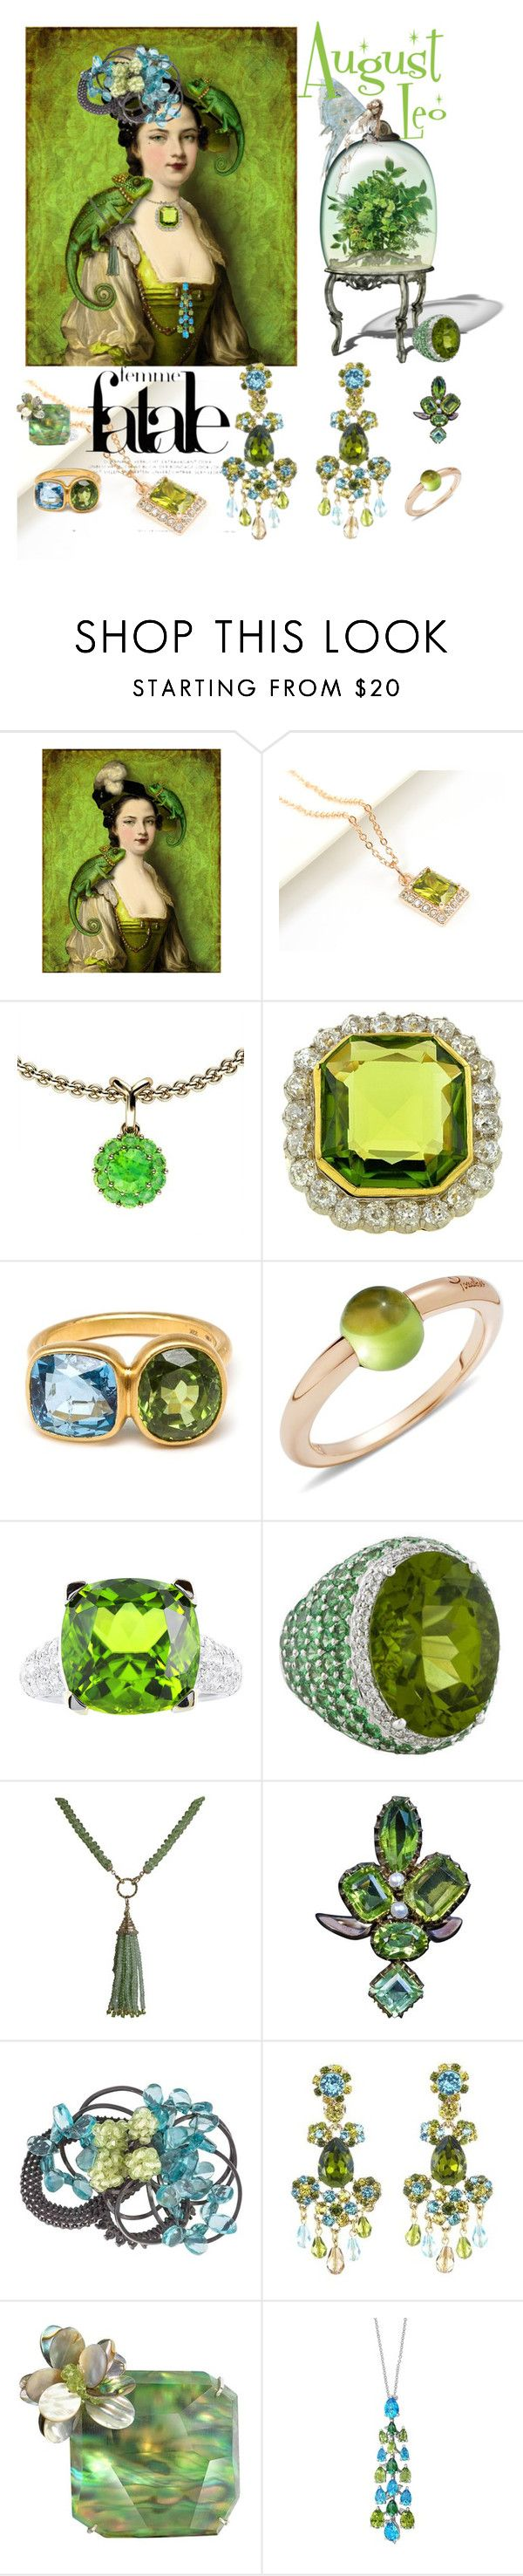 """""""August Leo's Month"""" by rosalindmarshall ❤ liked on Polyvore featuring Color My Life, Marie Hélène de Taillac, Pomellato, Marina J., Oscar de la Renta and Effy Jewelry"""